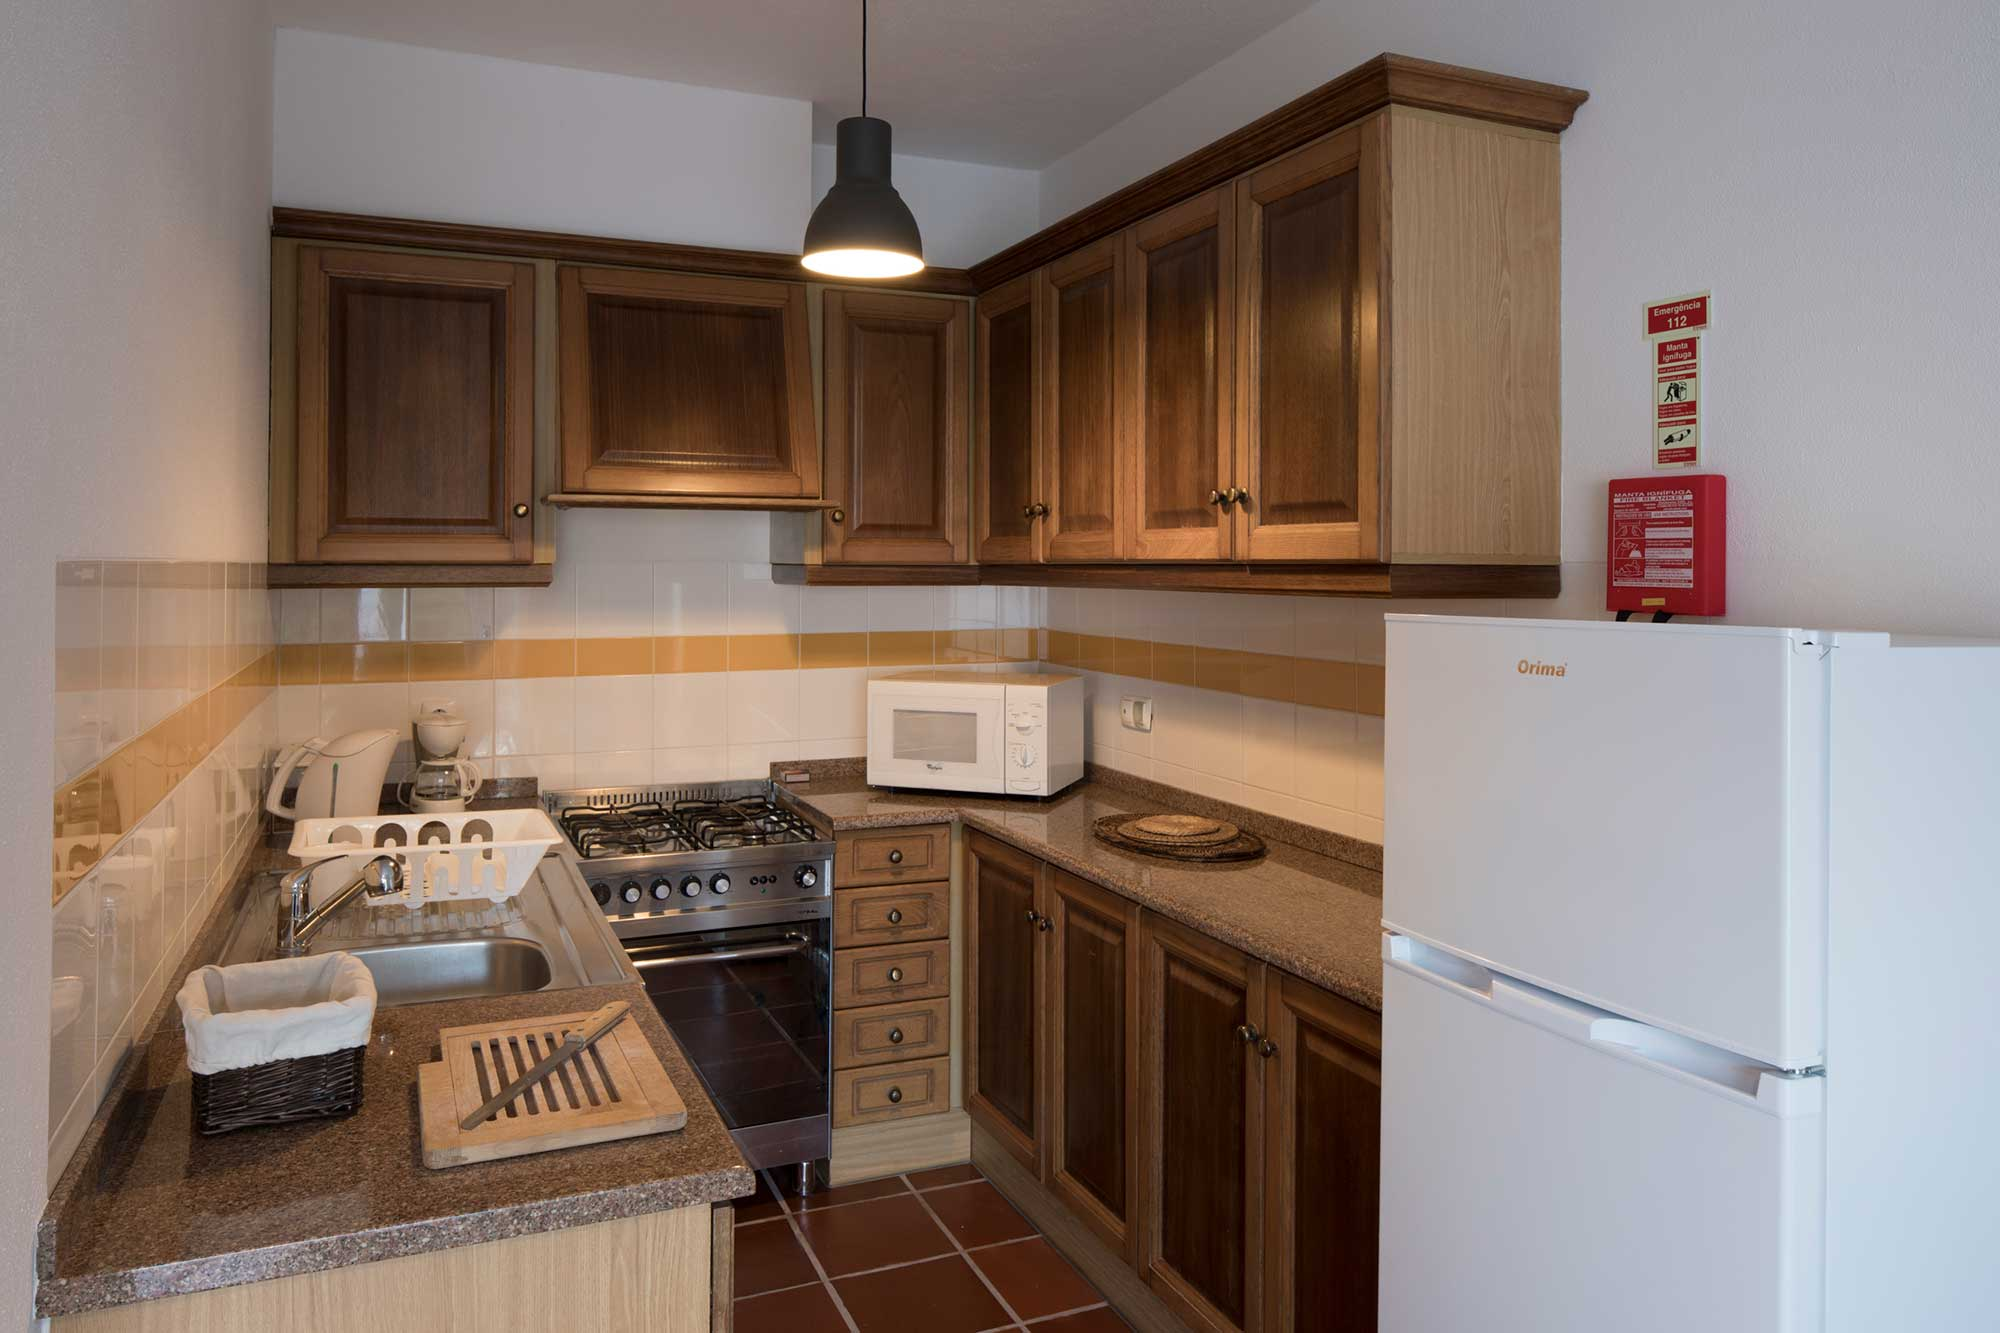 Apartment Monserrate offers a kitchenette